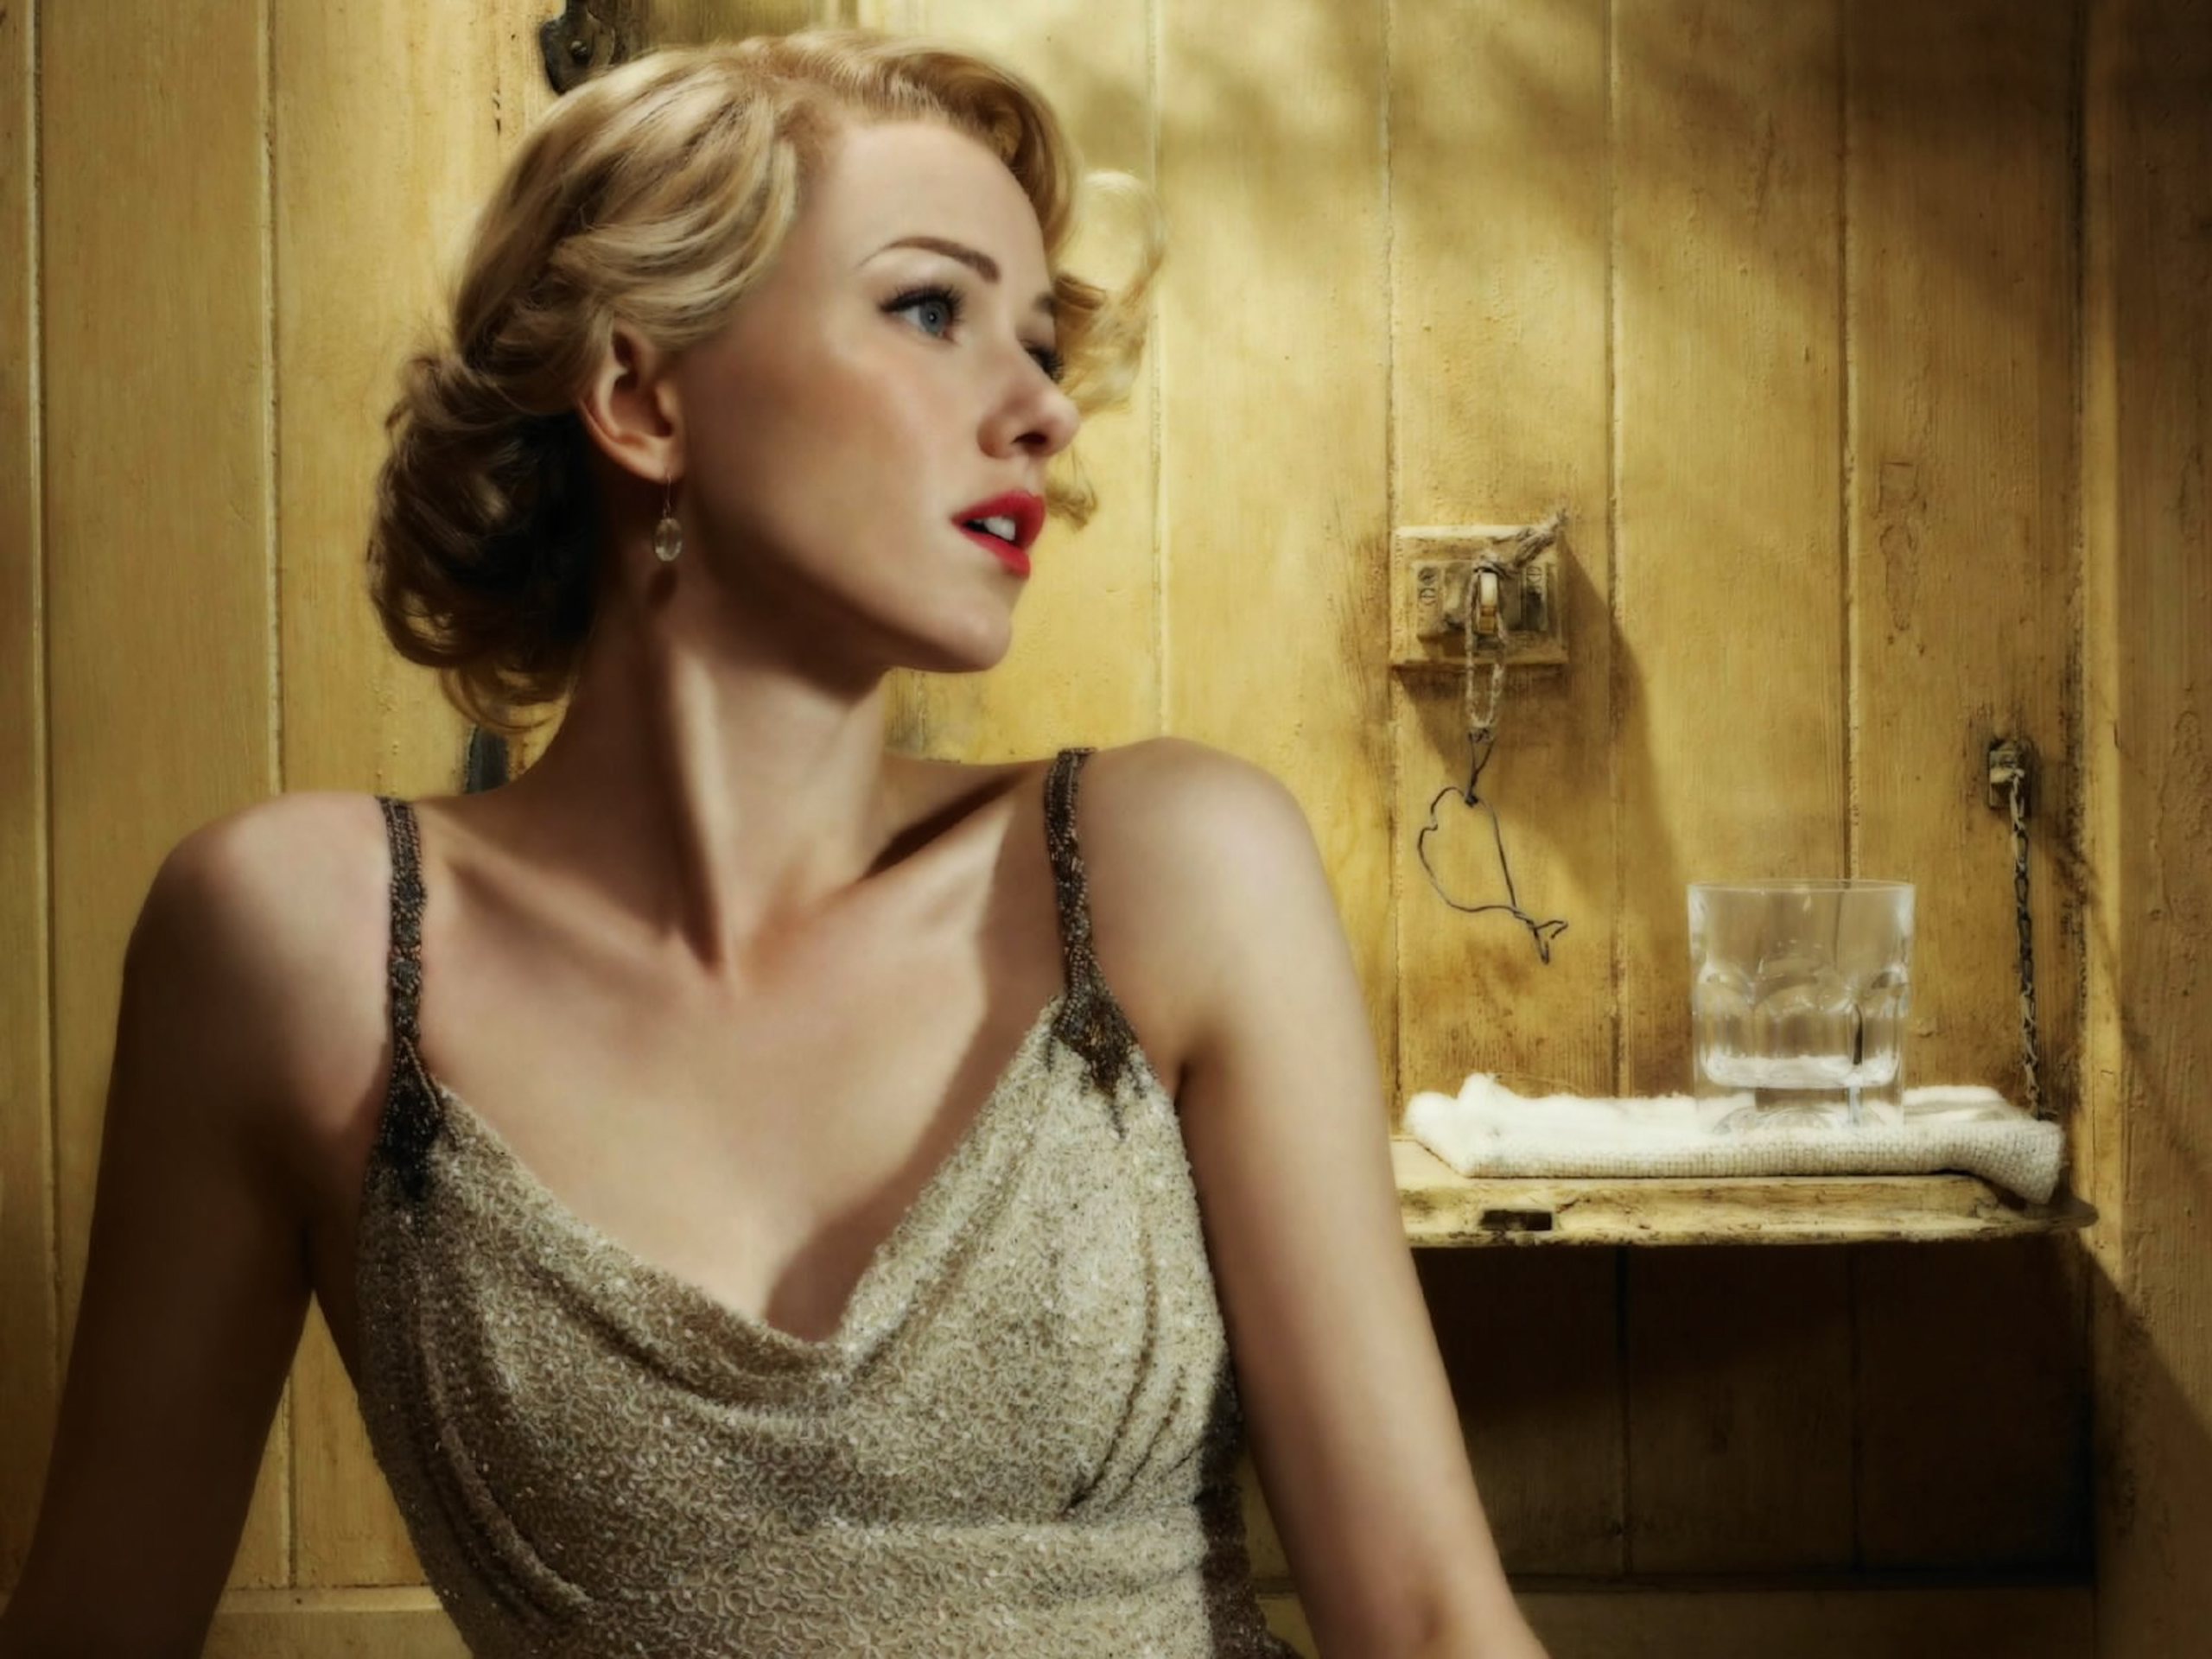 Naomi Watts Wallpapers High Resolution and Quality Download 2560x1920